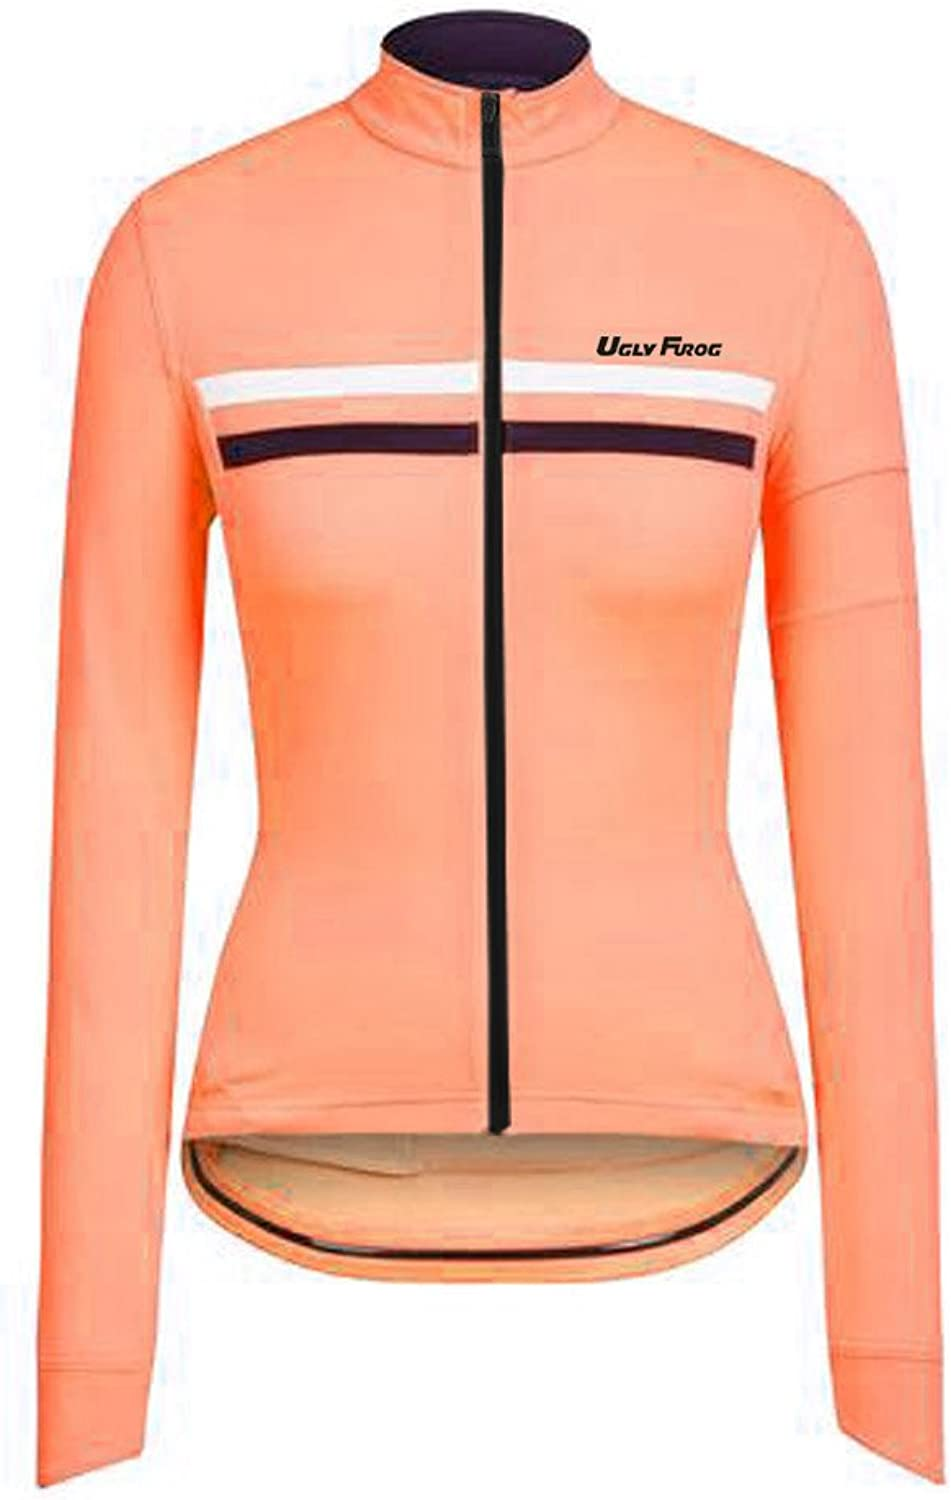 Uglyfrog 2016 WLS07 New Spring&Autumn Women's Long Sleeve Cycling Jerseys Outdoor Sports Wear Classical Bike Shirts Bicycle Tops Triathlon Clothing